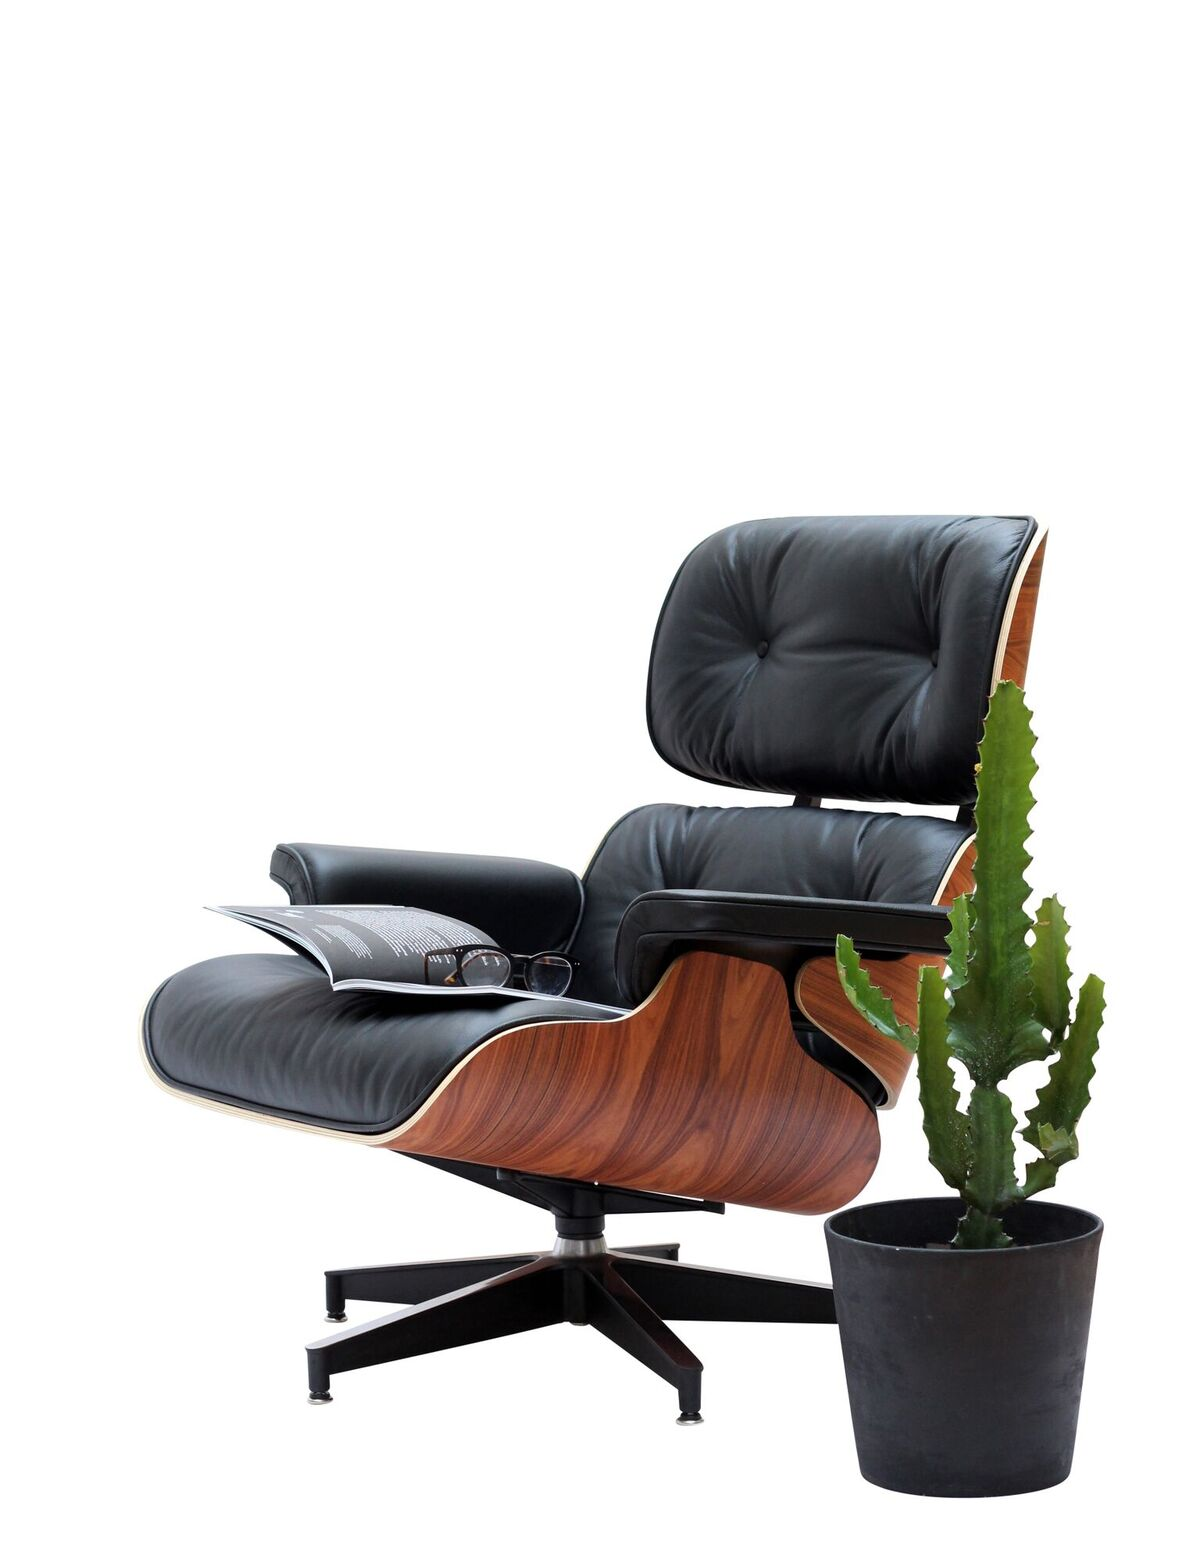 Admirable Pash Classics Eames Lounge Chair Ottoman The Coolector Machost Co Dining Chair Design Ideas Machostcouk